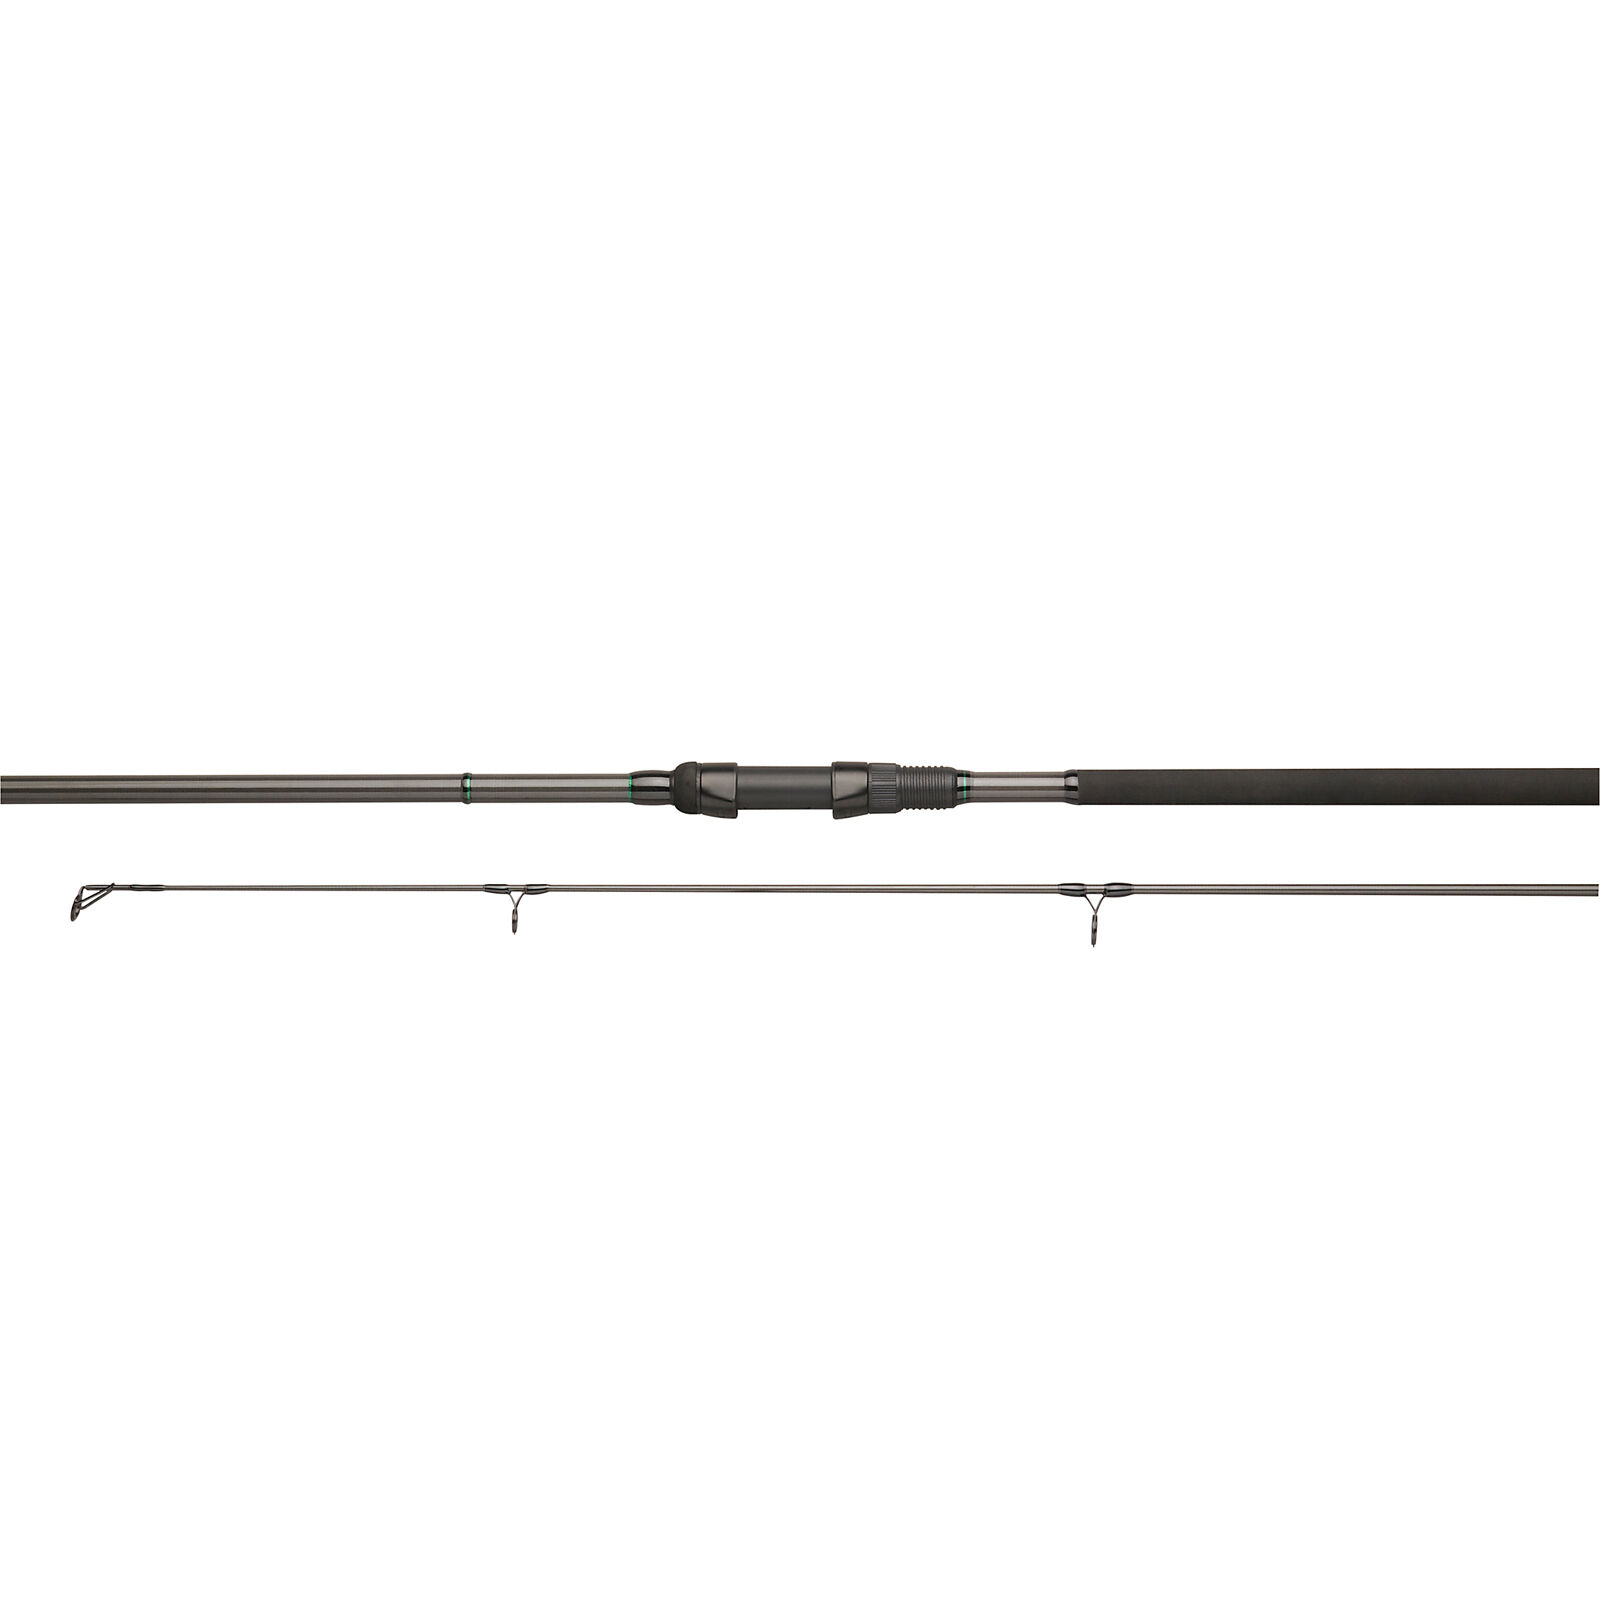 JRC 2 Piece Cocoon 2G Carp Fishing Fishing Fishing Rods 10ft & 12ft  Models Available 19aa8e